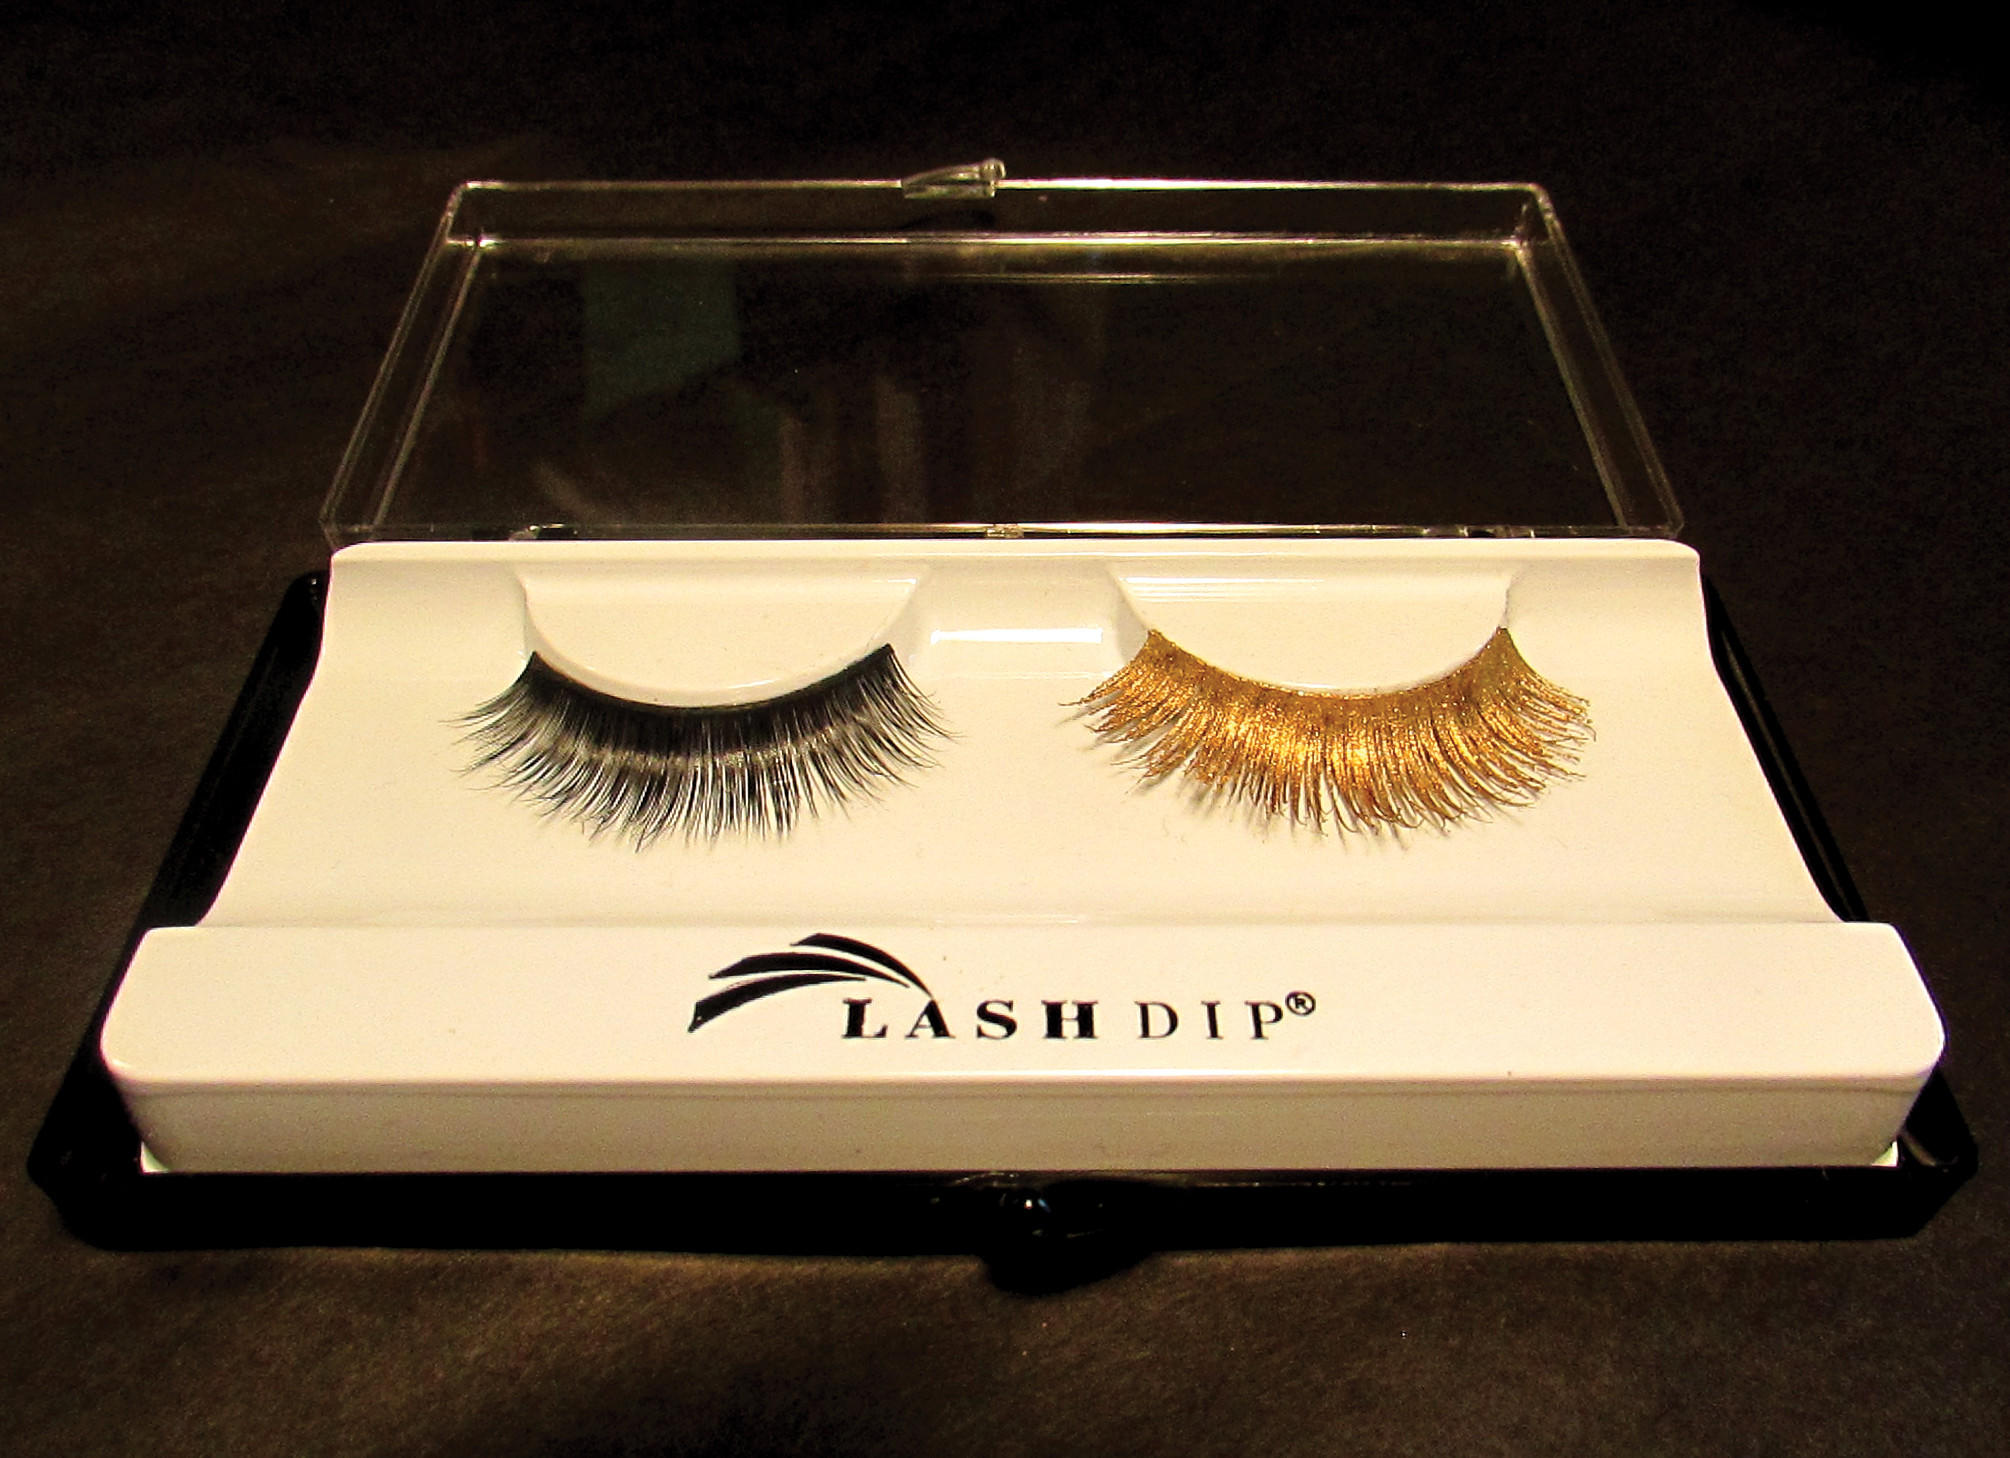 A regular lash contrasts with one done in 24-karat gold from Lash Dip.